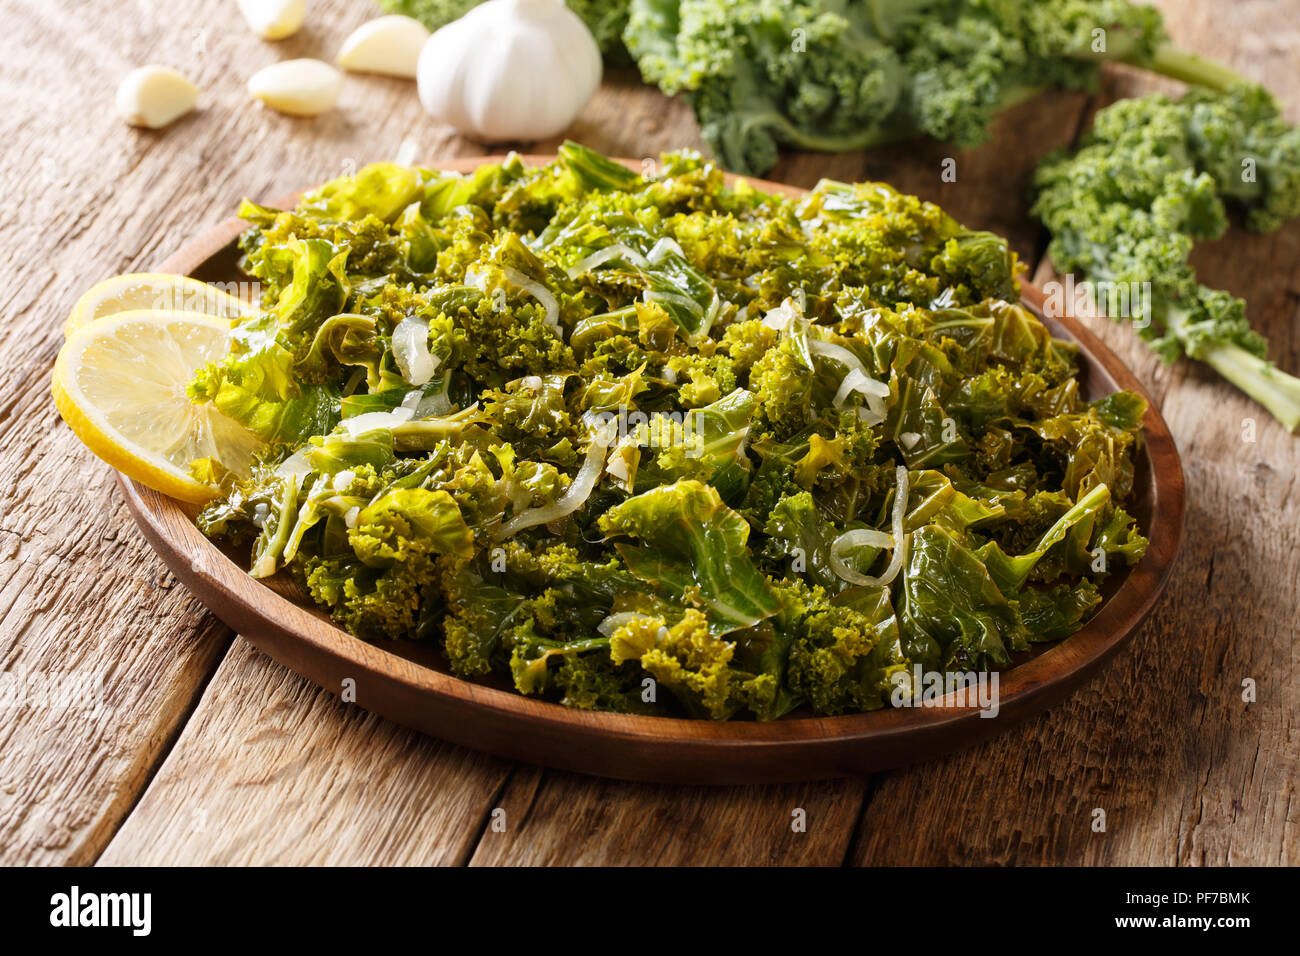 Kale or leaf cabbage cooked with onions, garlic, olive oil and lemon close-up on a plate on a table. horizontal - Stock Image